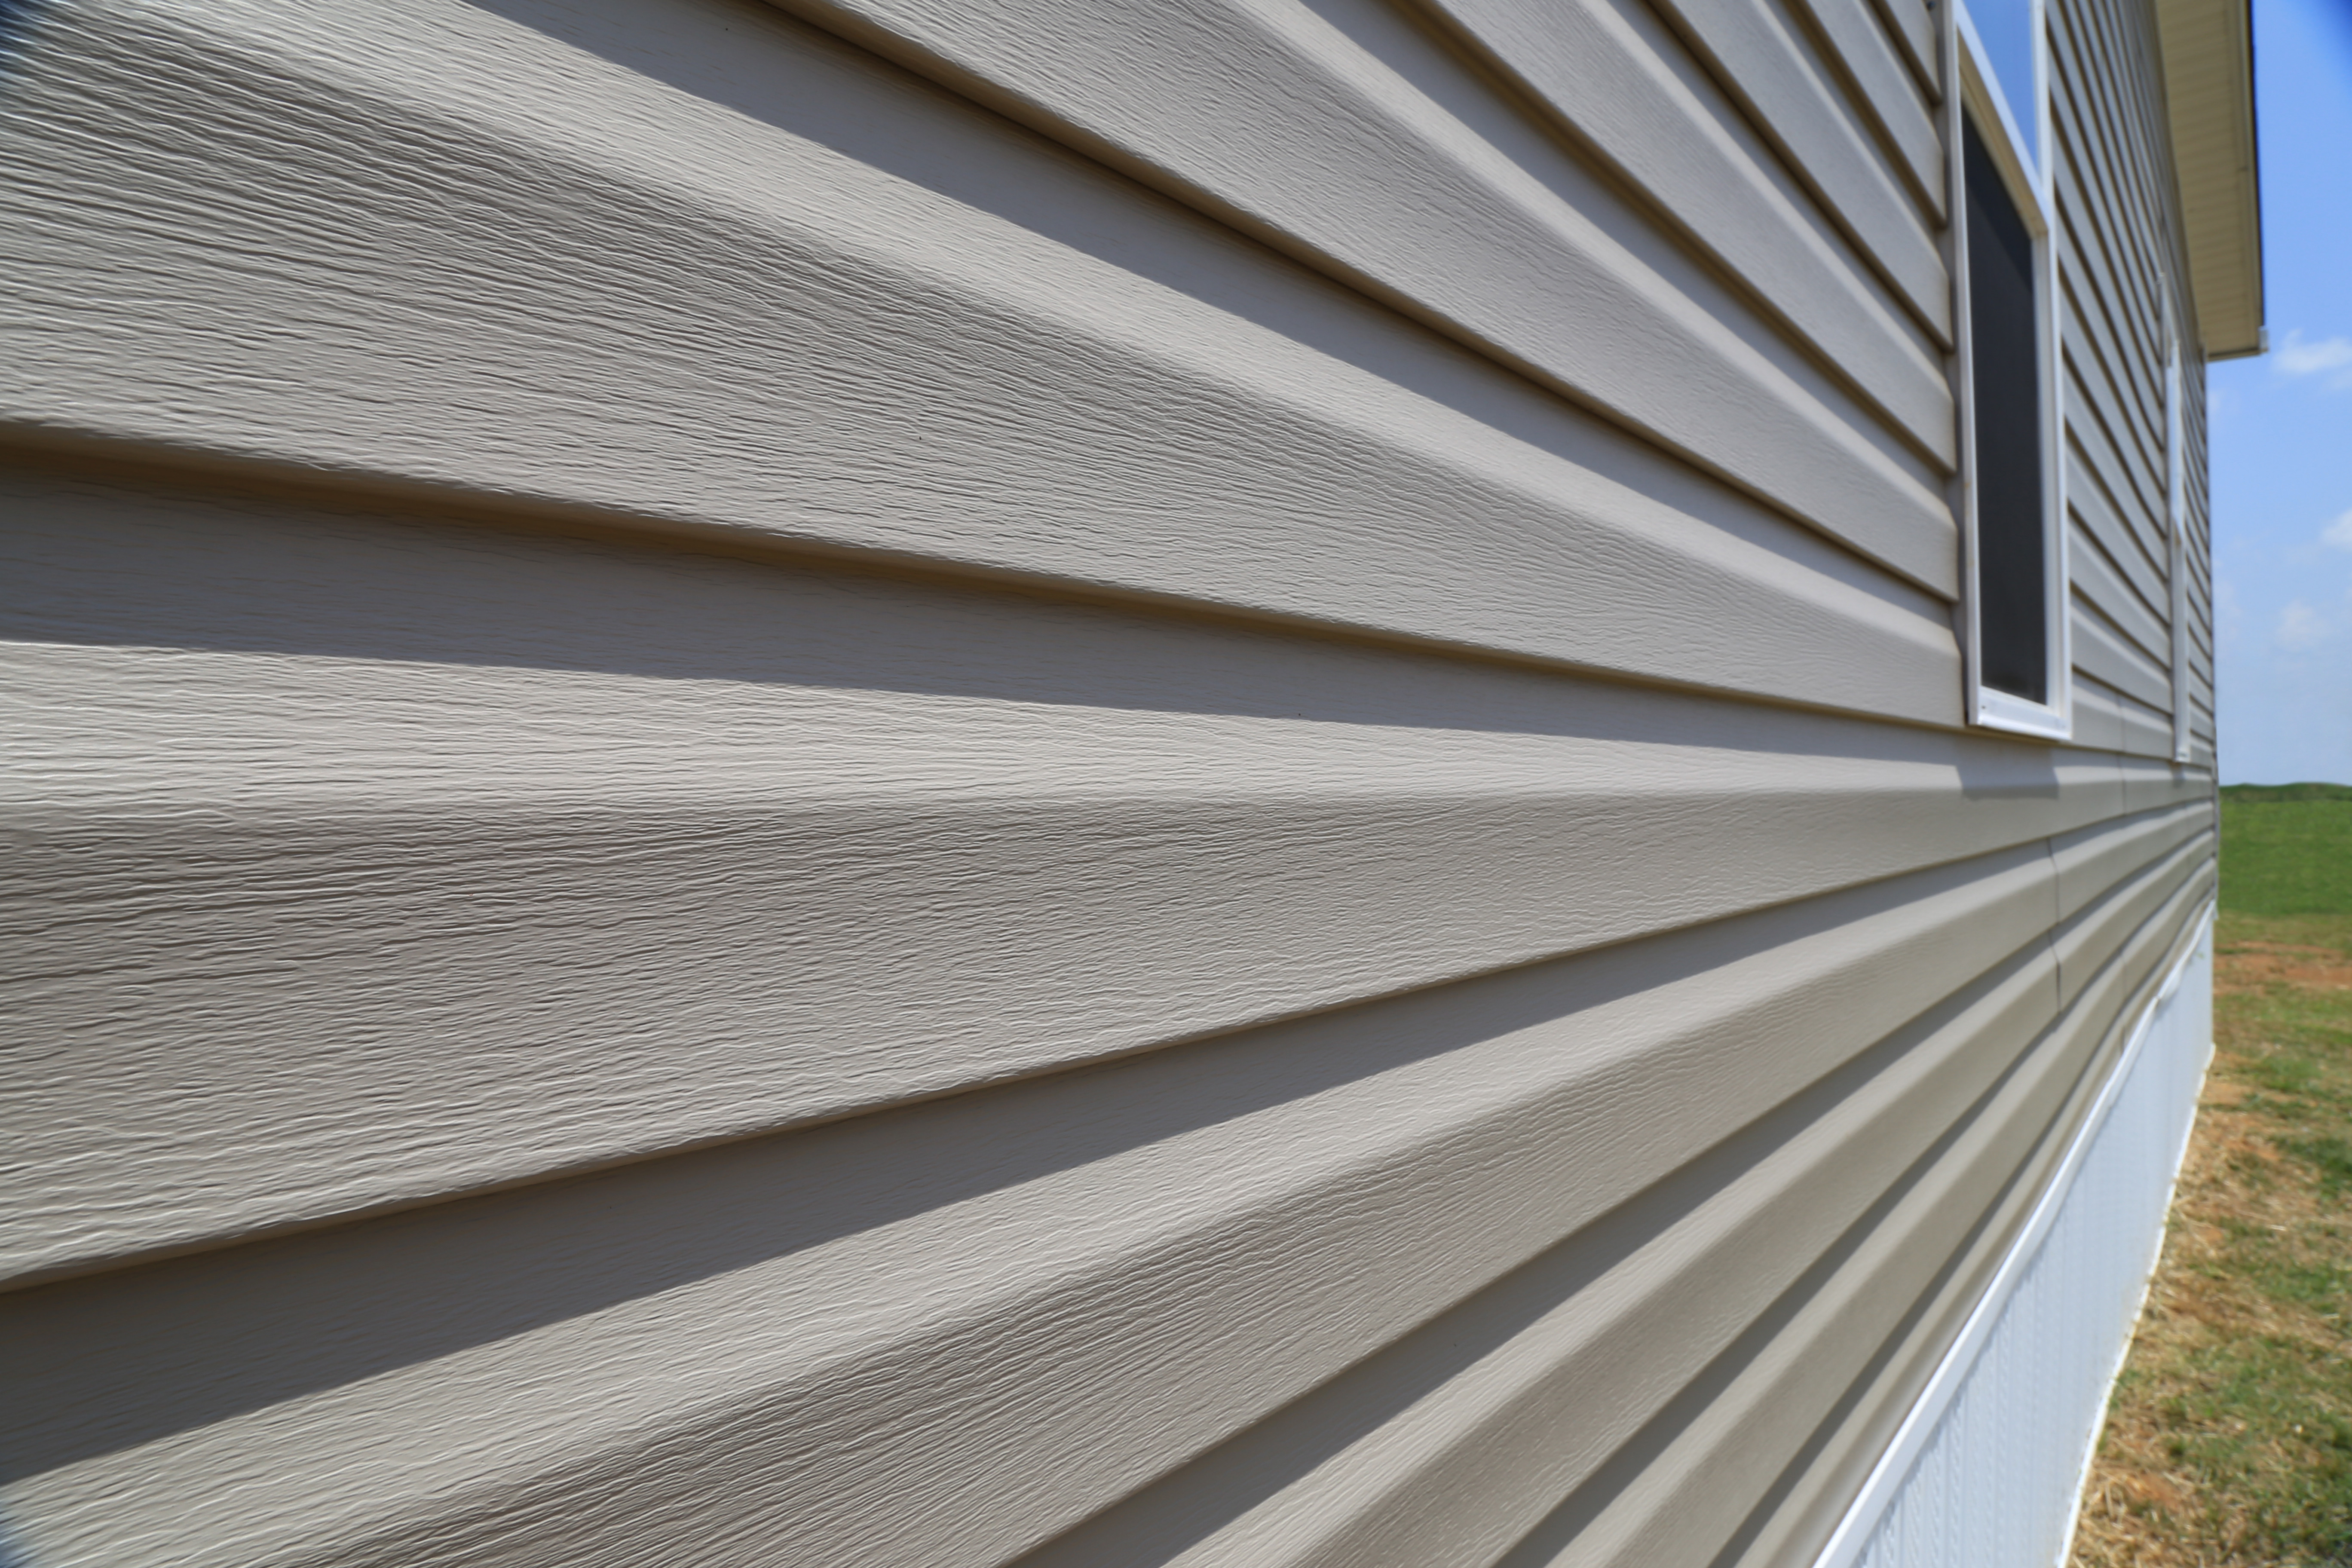 How To Clean Vinyl Siding Vmf Homes Blog